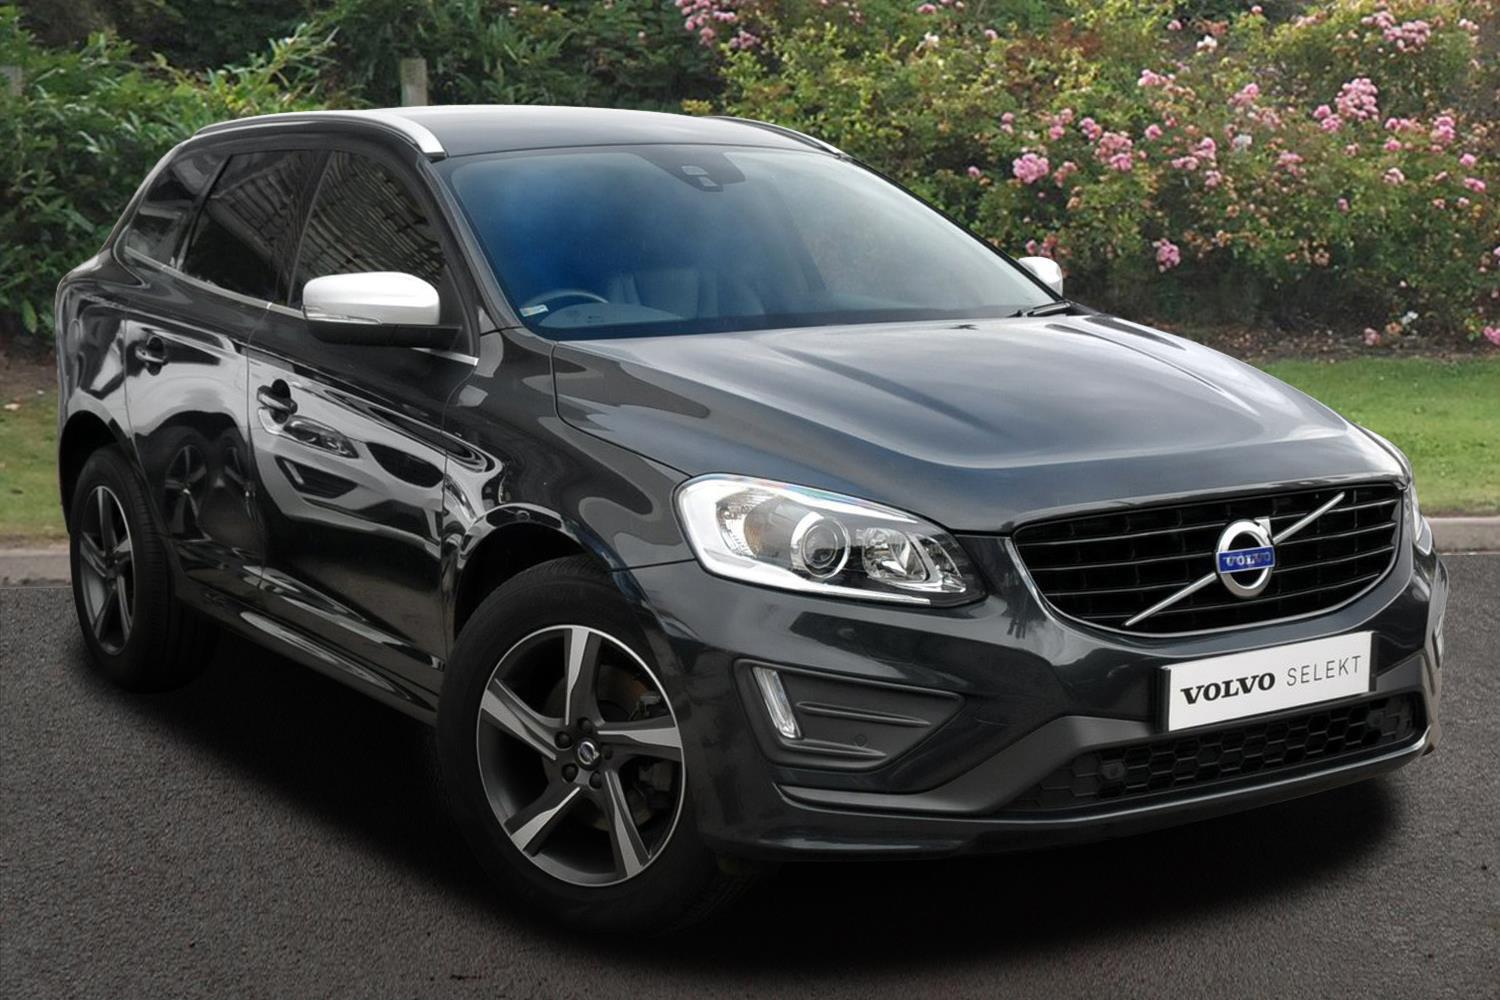 used volvo xc60 d5 220 r design lux nav 5dr awd geartronic diesel estate for sale bristol. Black Bedroom Furniture Sets. Home Design Ideas